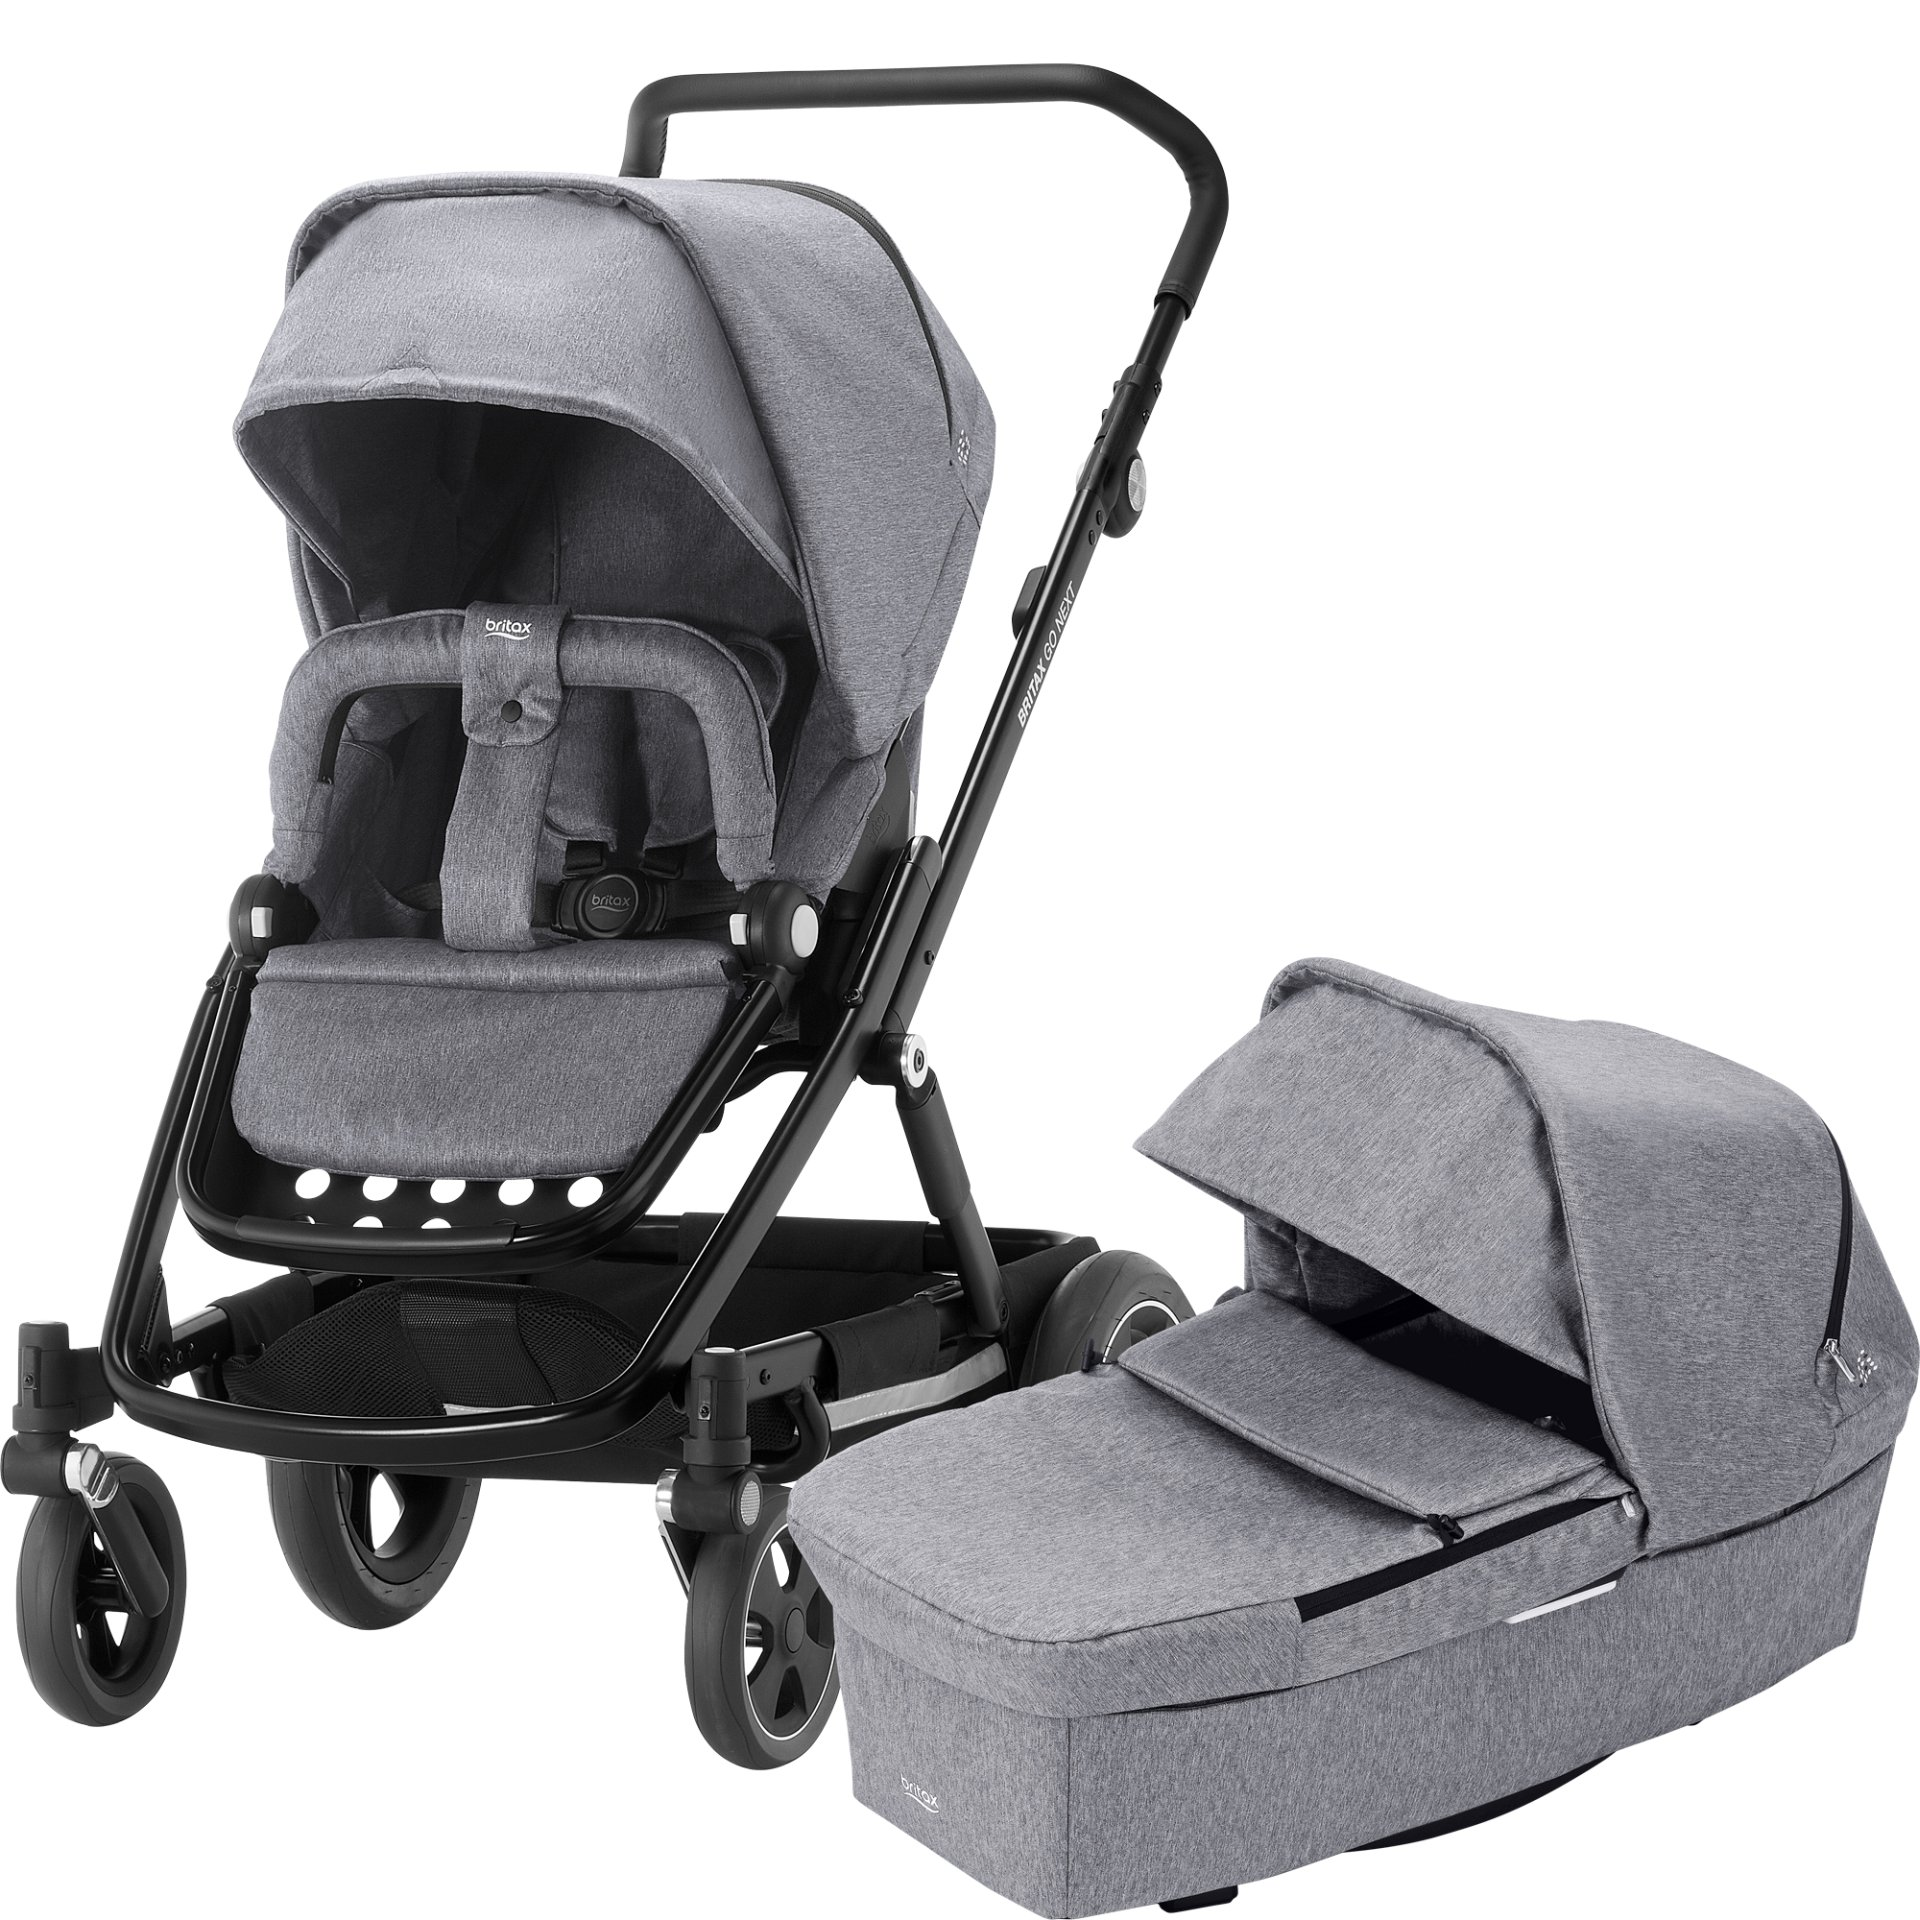 britax r mer stroller go next 2018 grey melange buy at kidsroom strollers. Black Bedroom Furniture Sets. Home Design Ideas